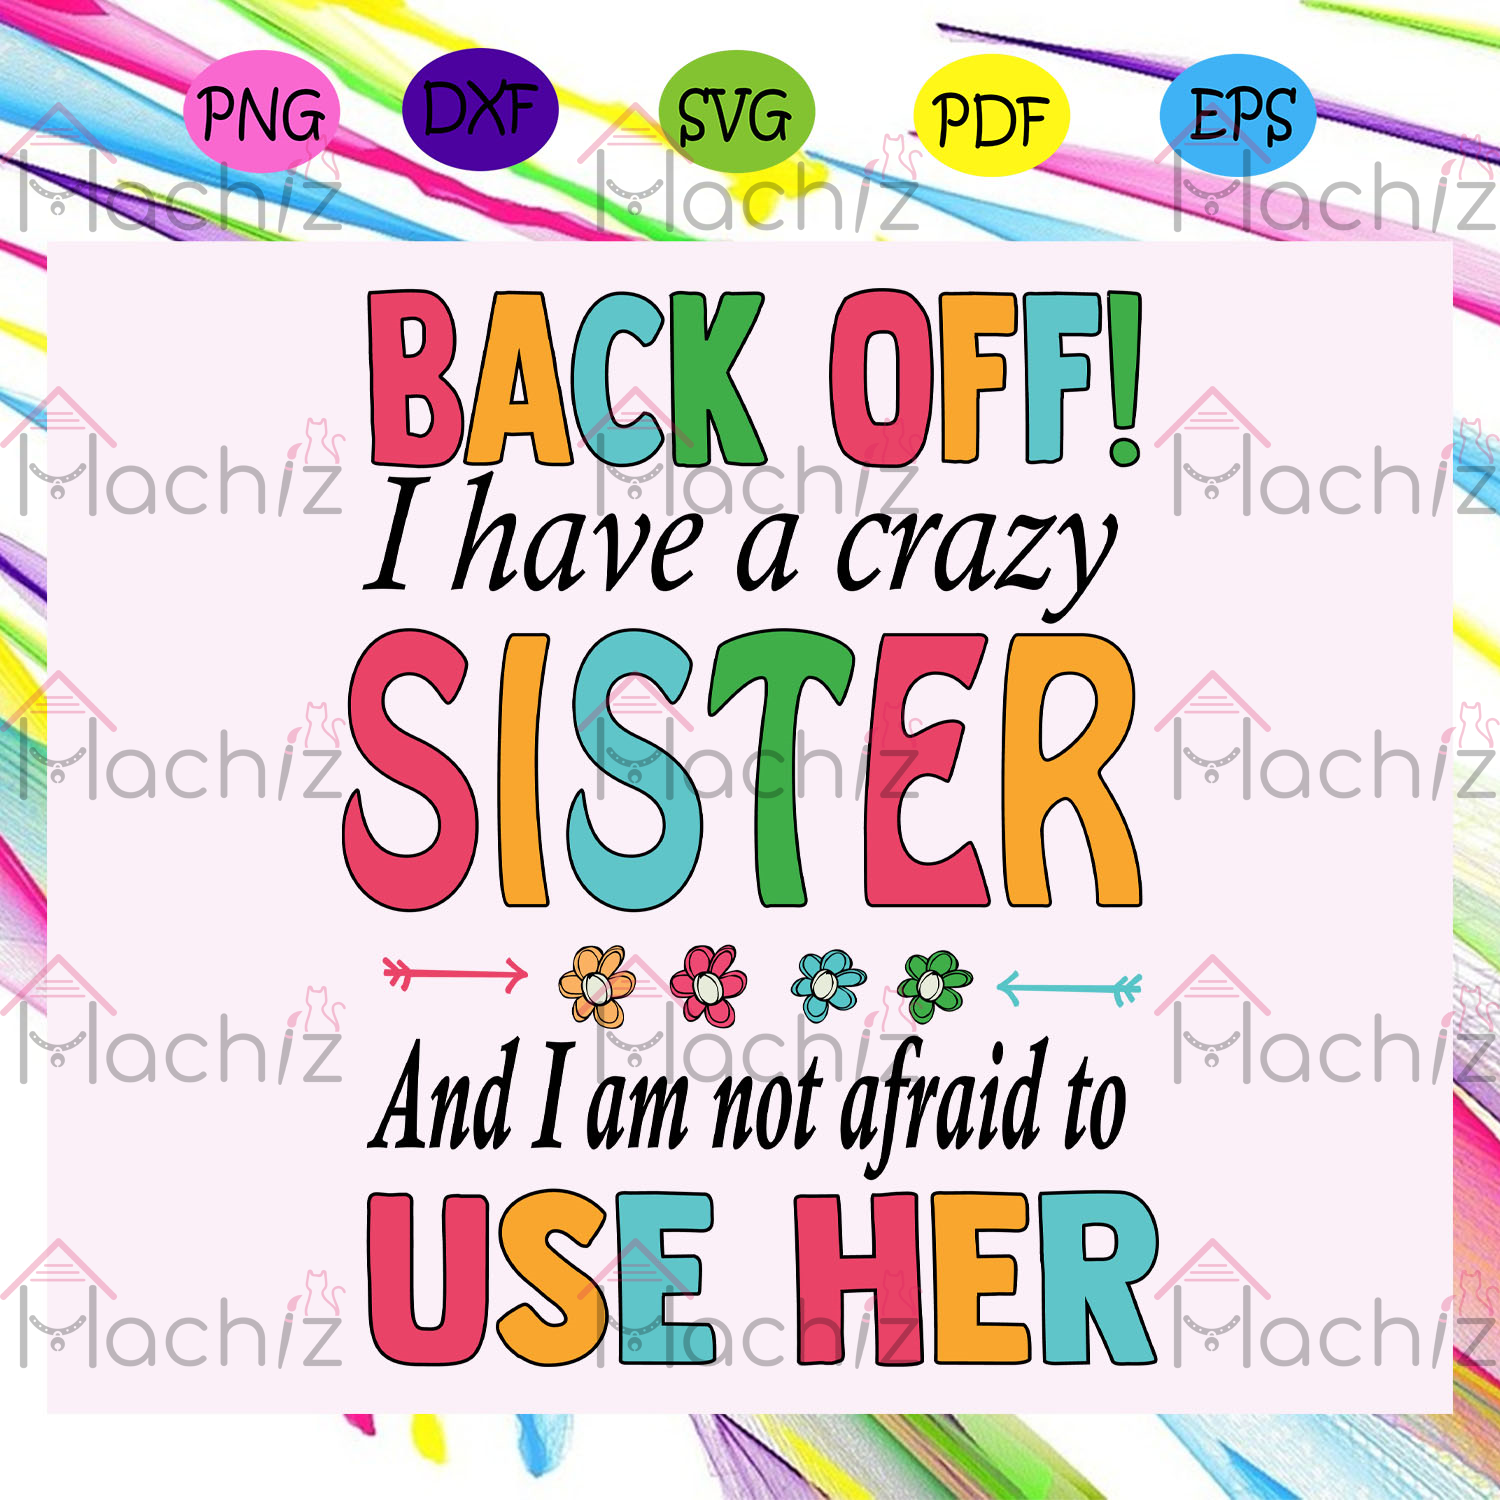 Back off I have a crazy sister sister , Mothers Day Gift,Trendy Mom,trending svg, Files For Silhouette, Files For Cricut, SVG, DXF, EPS, PNG, Instant Download